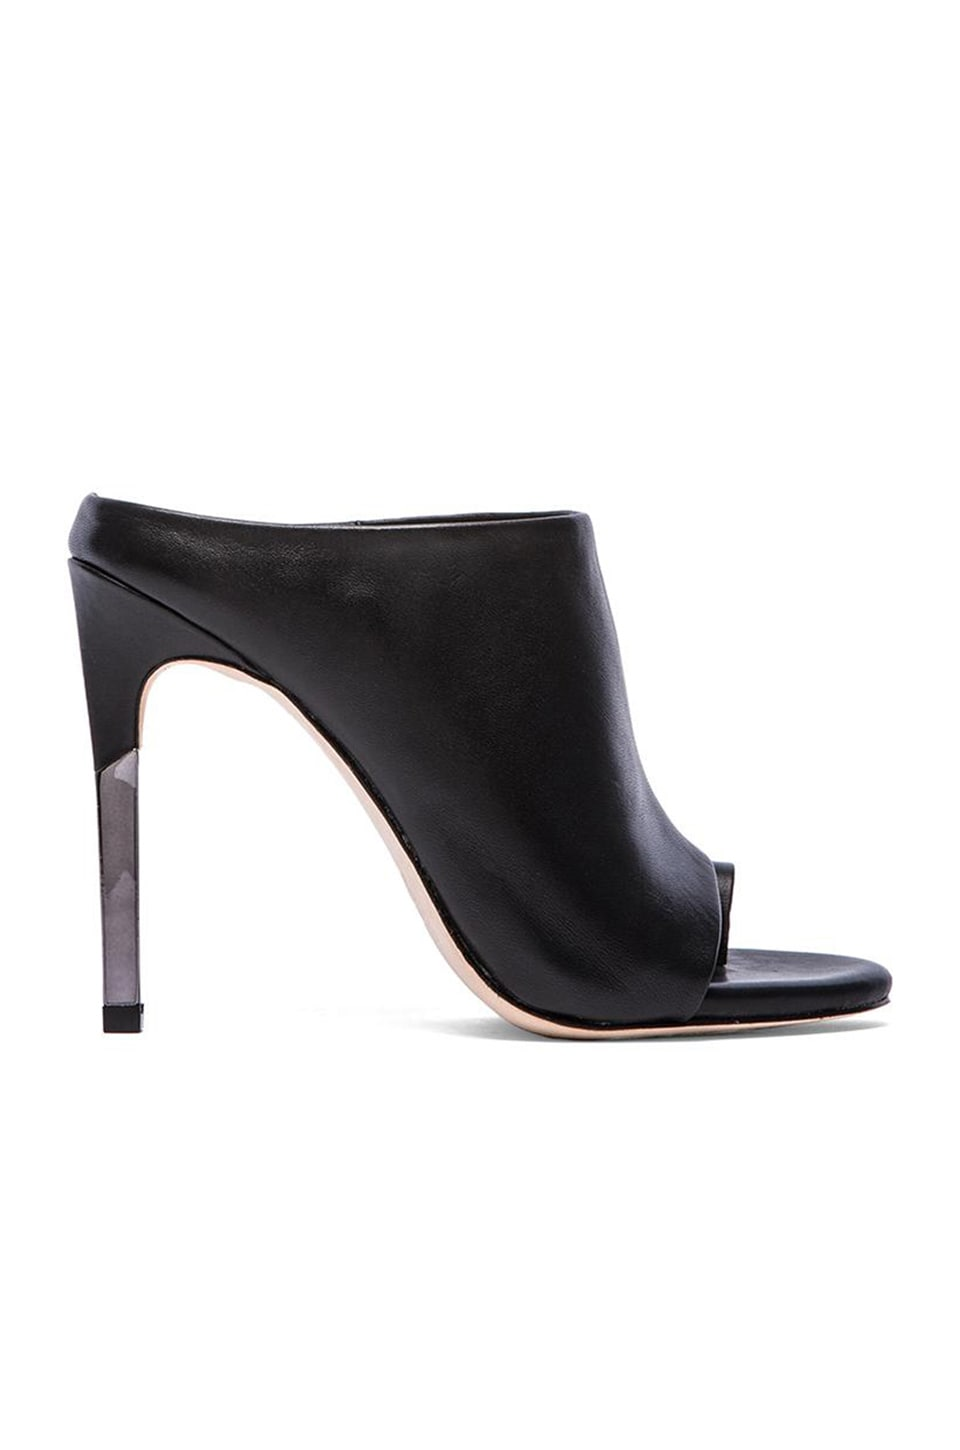 BCBGMAXAZRIA Dag Mule Pumps in Black